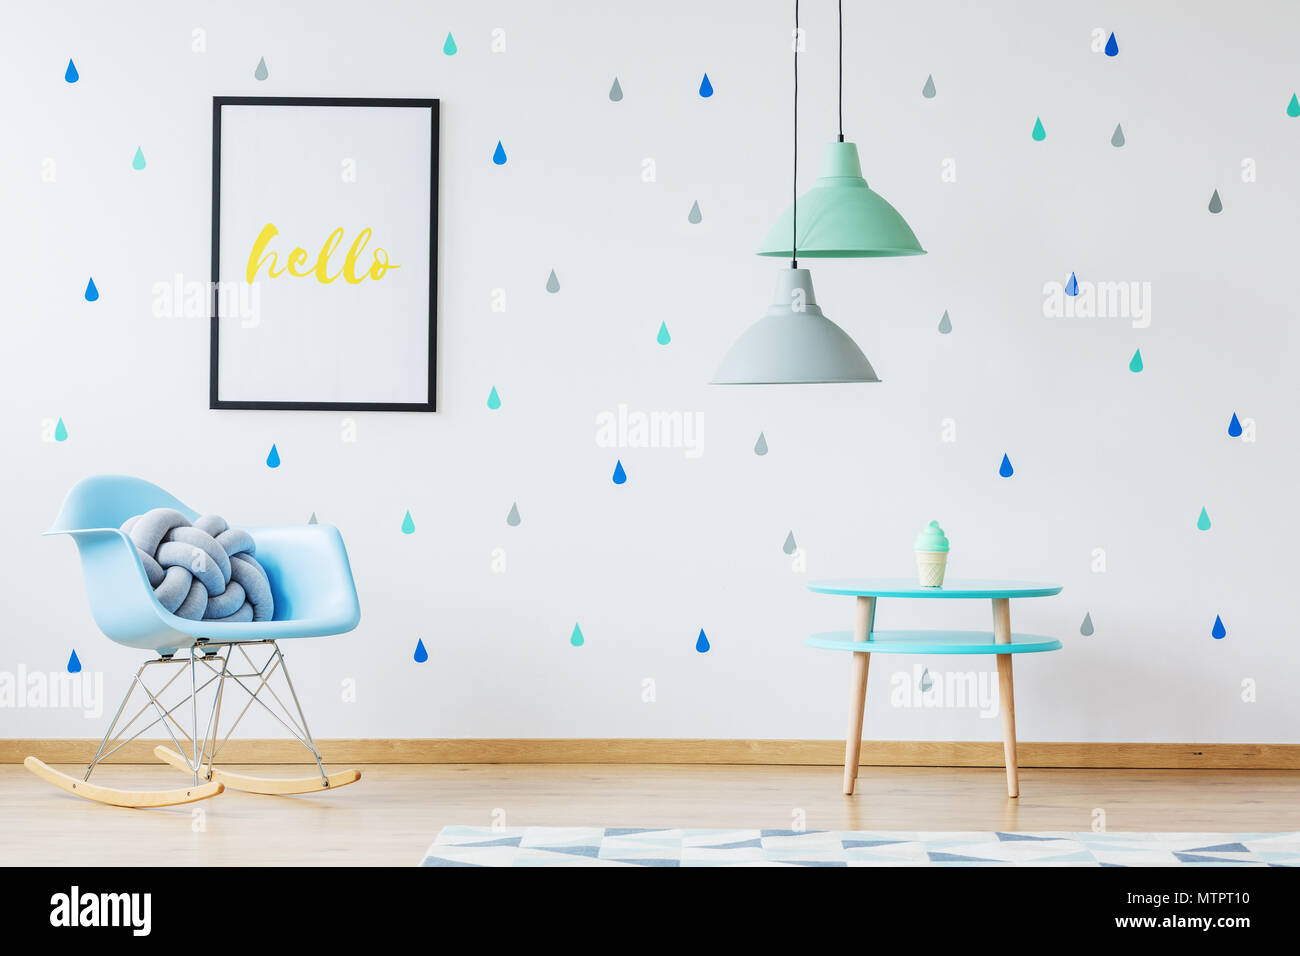 Blue knot pillow on blue rocking chair in boyu0027s room with l&s above table and yellow poster on the wall  sc 1 st  Alamy & Blue knot pillow on blue rocking chair in boyu0027s room with lamps ...